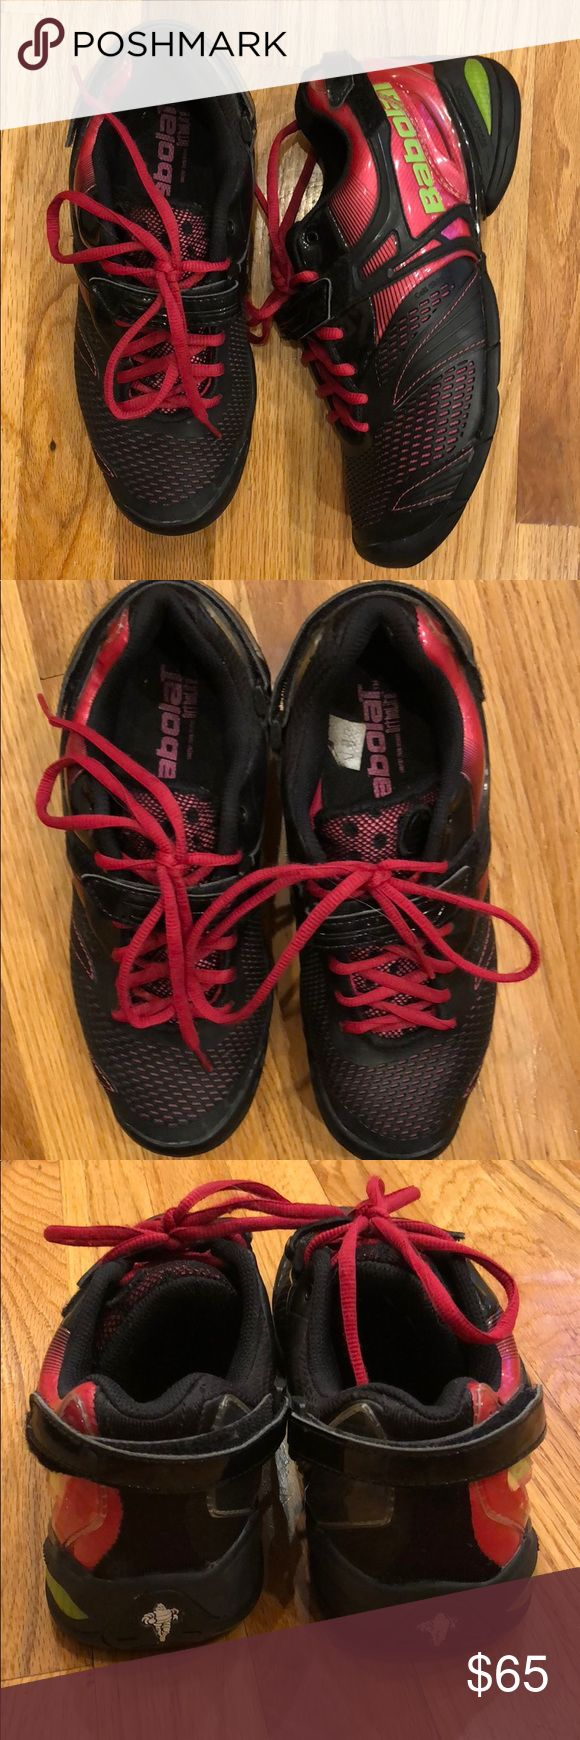 Babolat Women's tennis sneakers Babolat women's all court tennis shoes. Size 8. Black with hot pink trim. Tie and Velcro closure. Gently used. Great condition. Babolat Shoes Sneakers